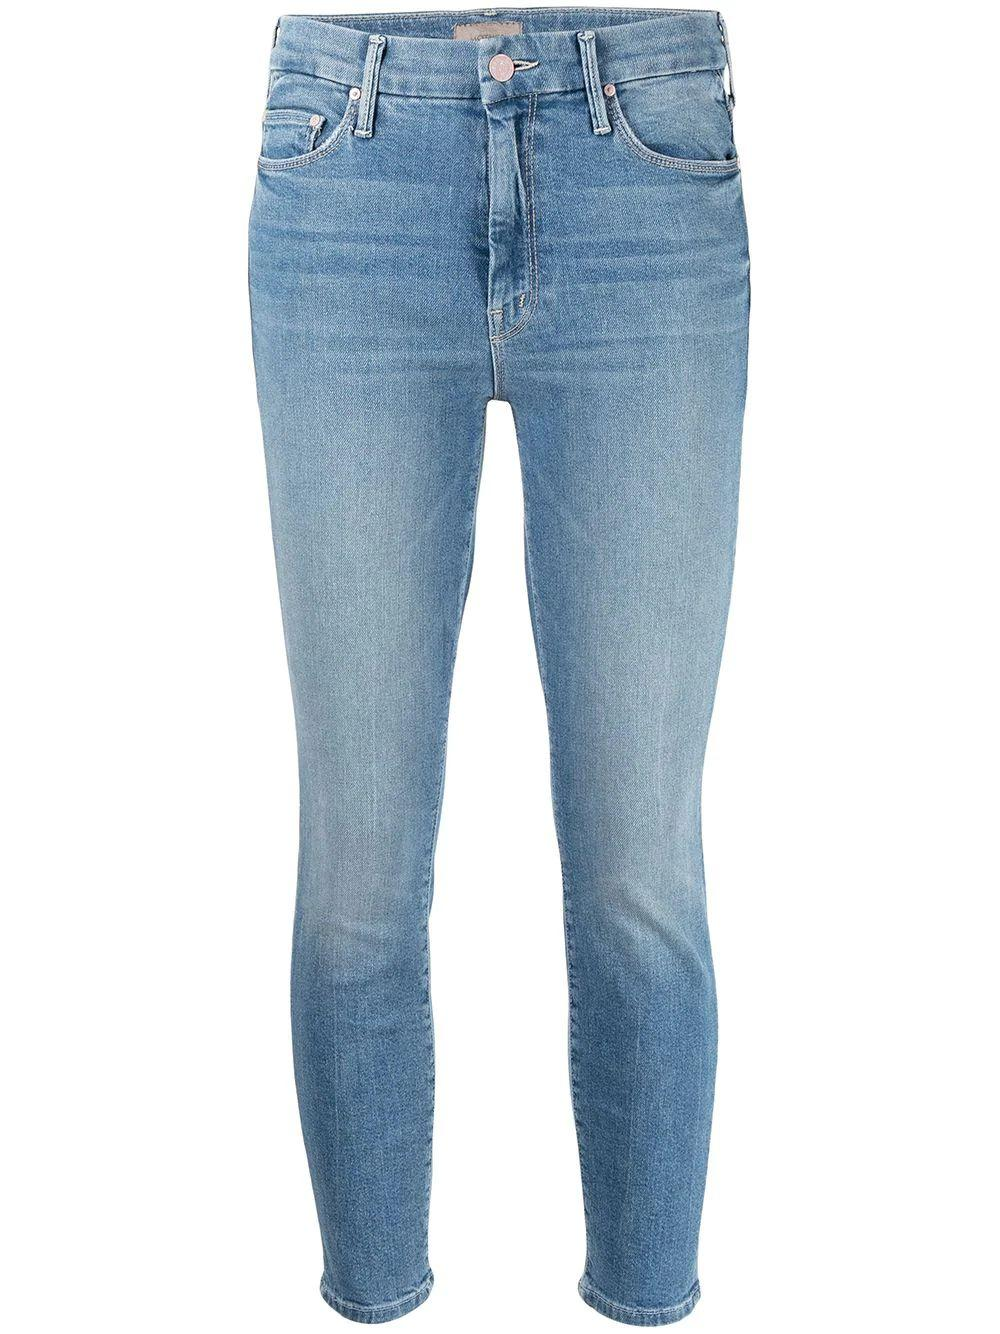 The Looker Cropped Jean Item # 1121-470